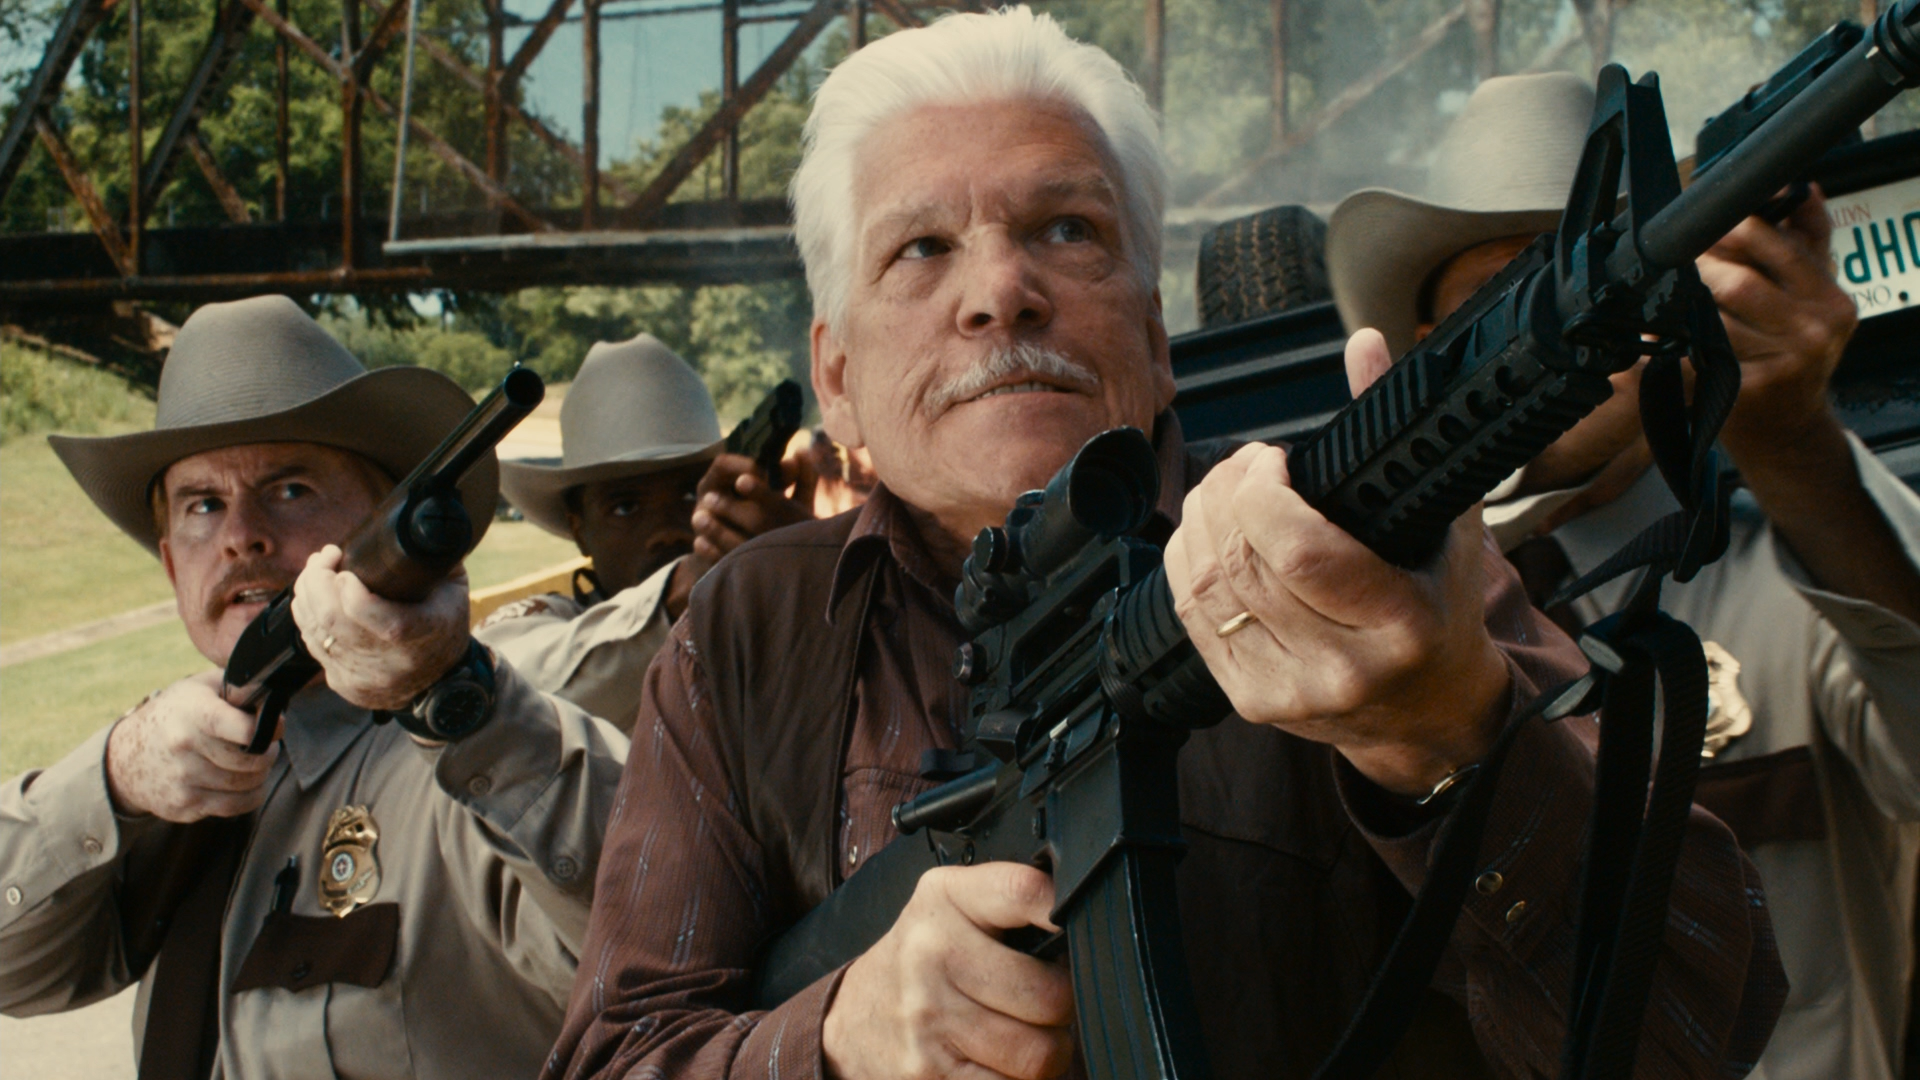 Tom Atkins as Cap